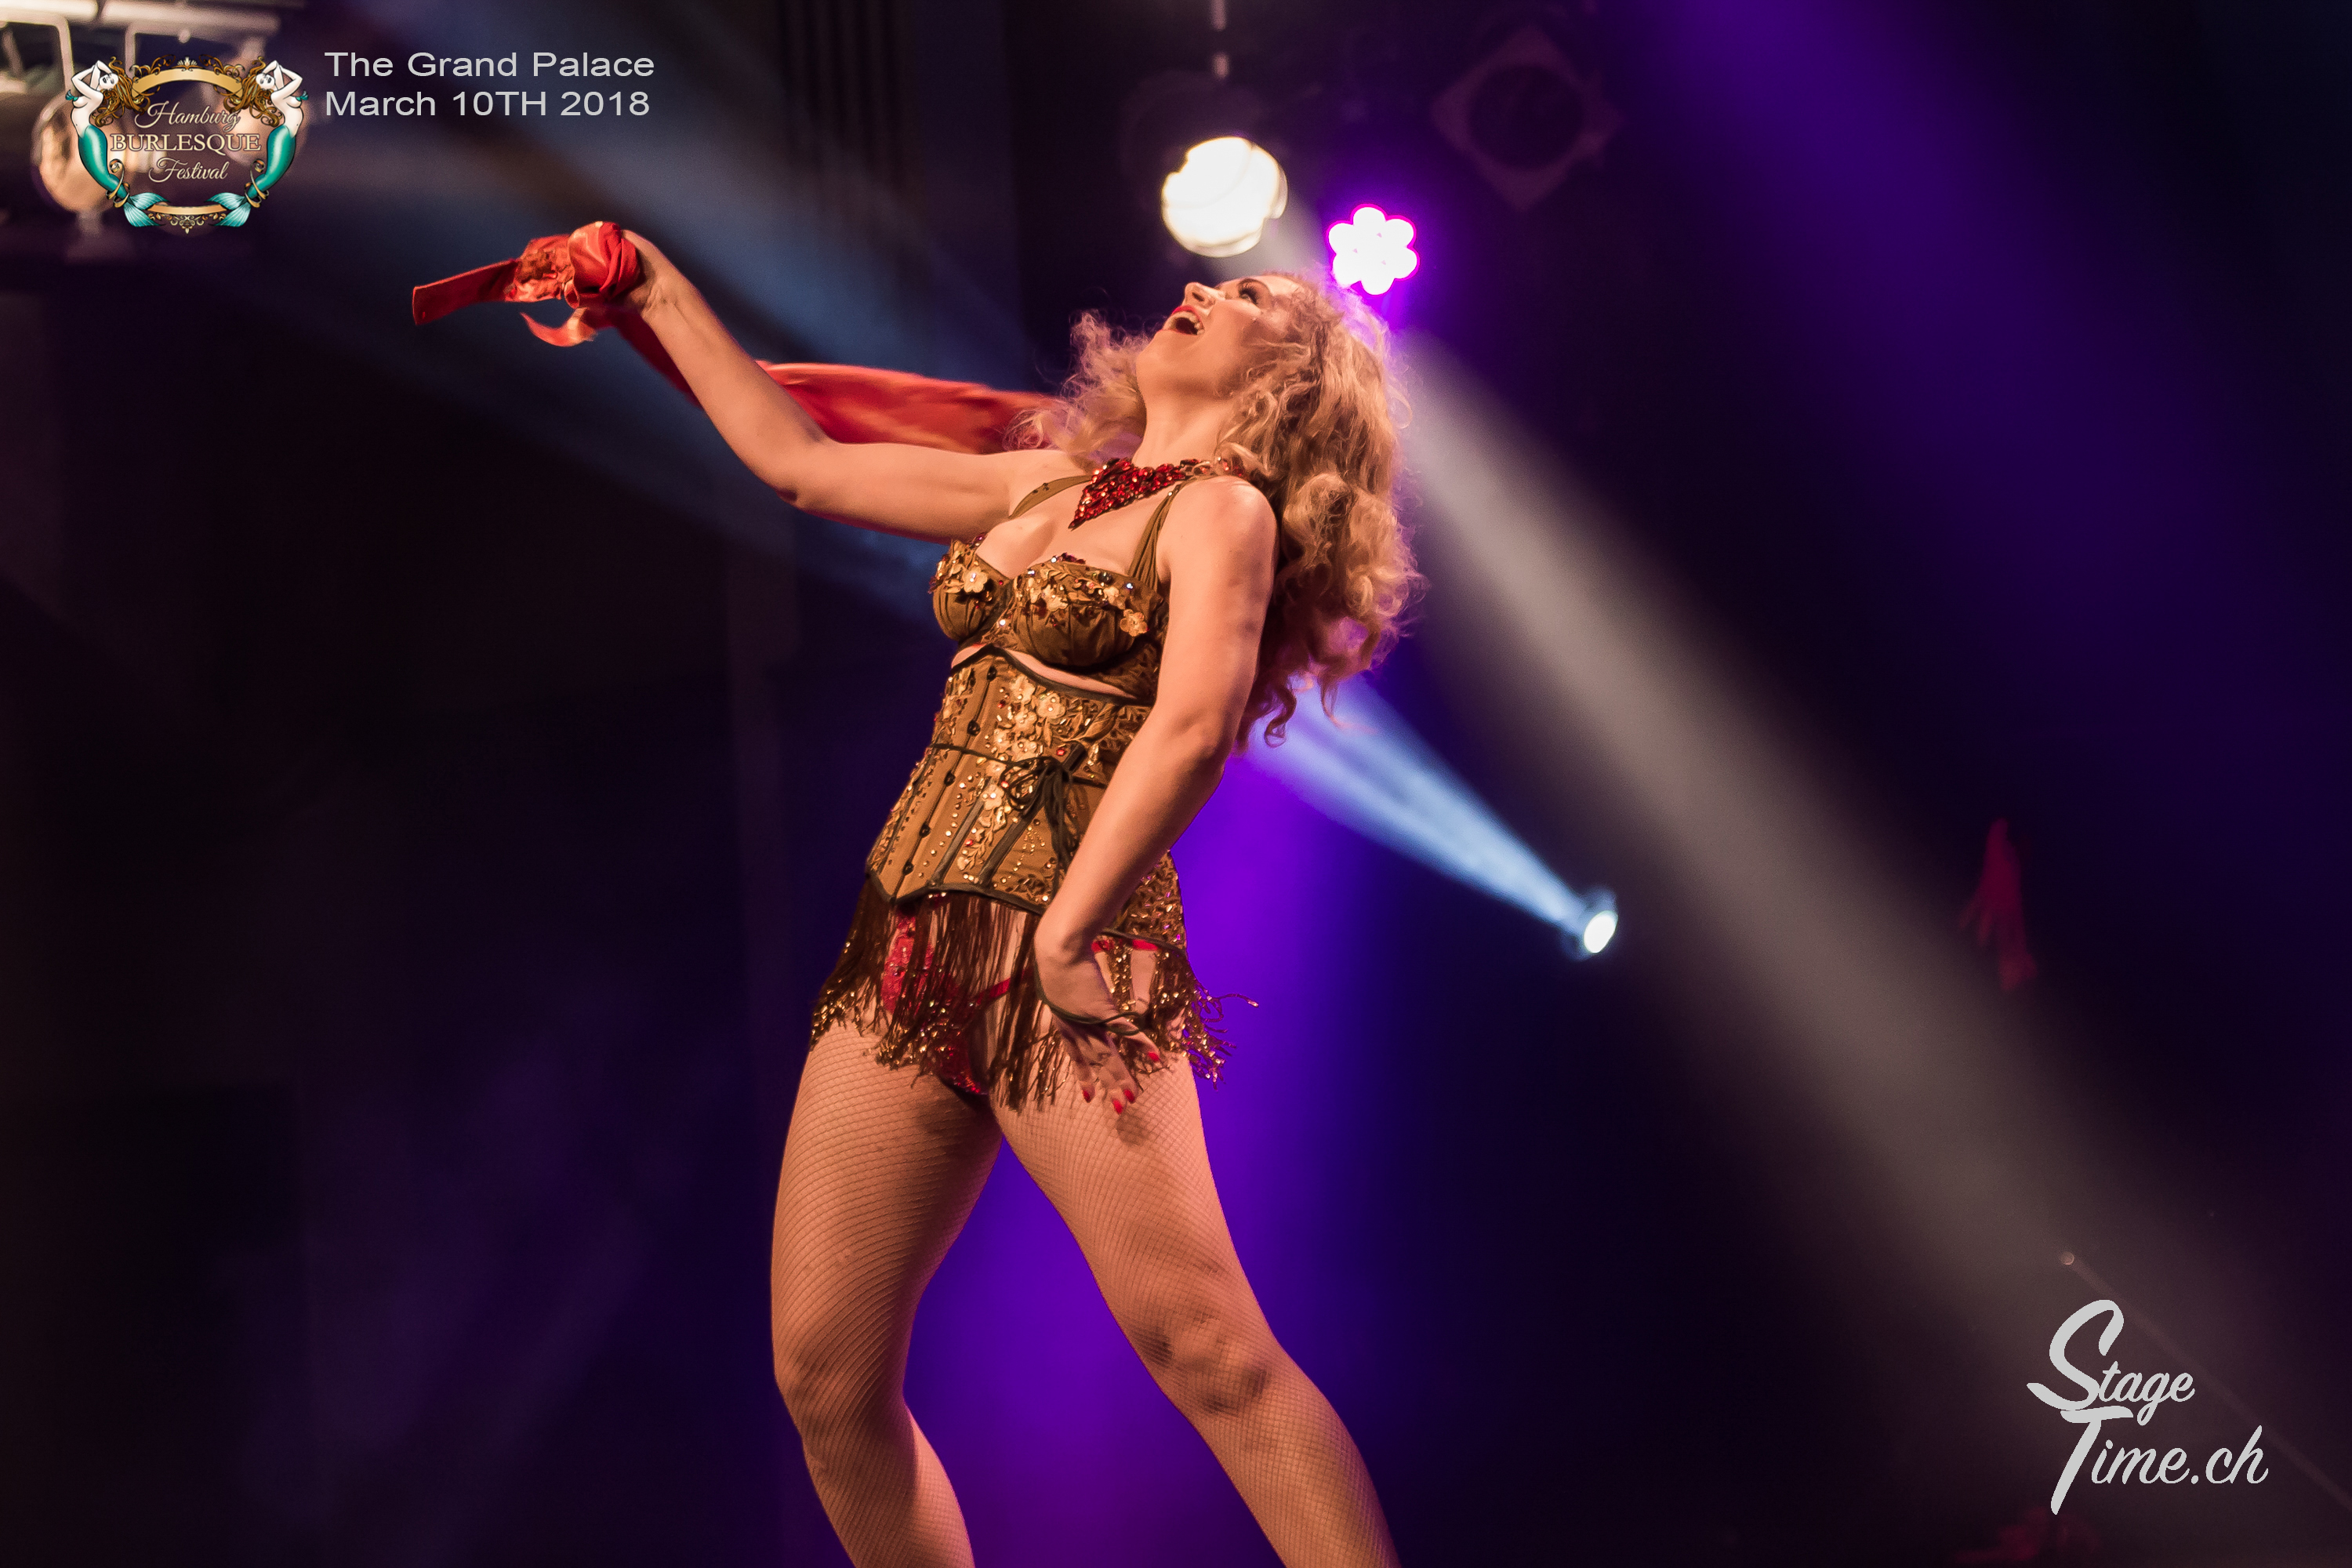 Hamburg_Burlesque_Festival_The_Grand_Palace__📷_Christoph_Gurtner_I_stagetime.ch-82